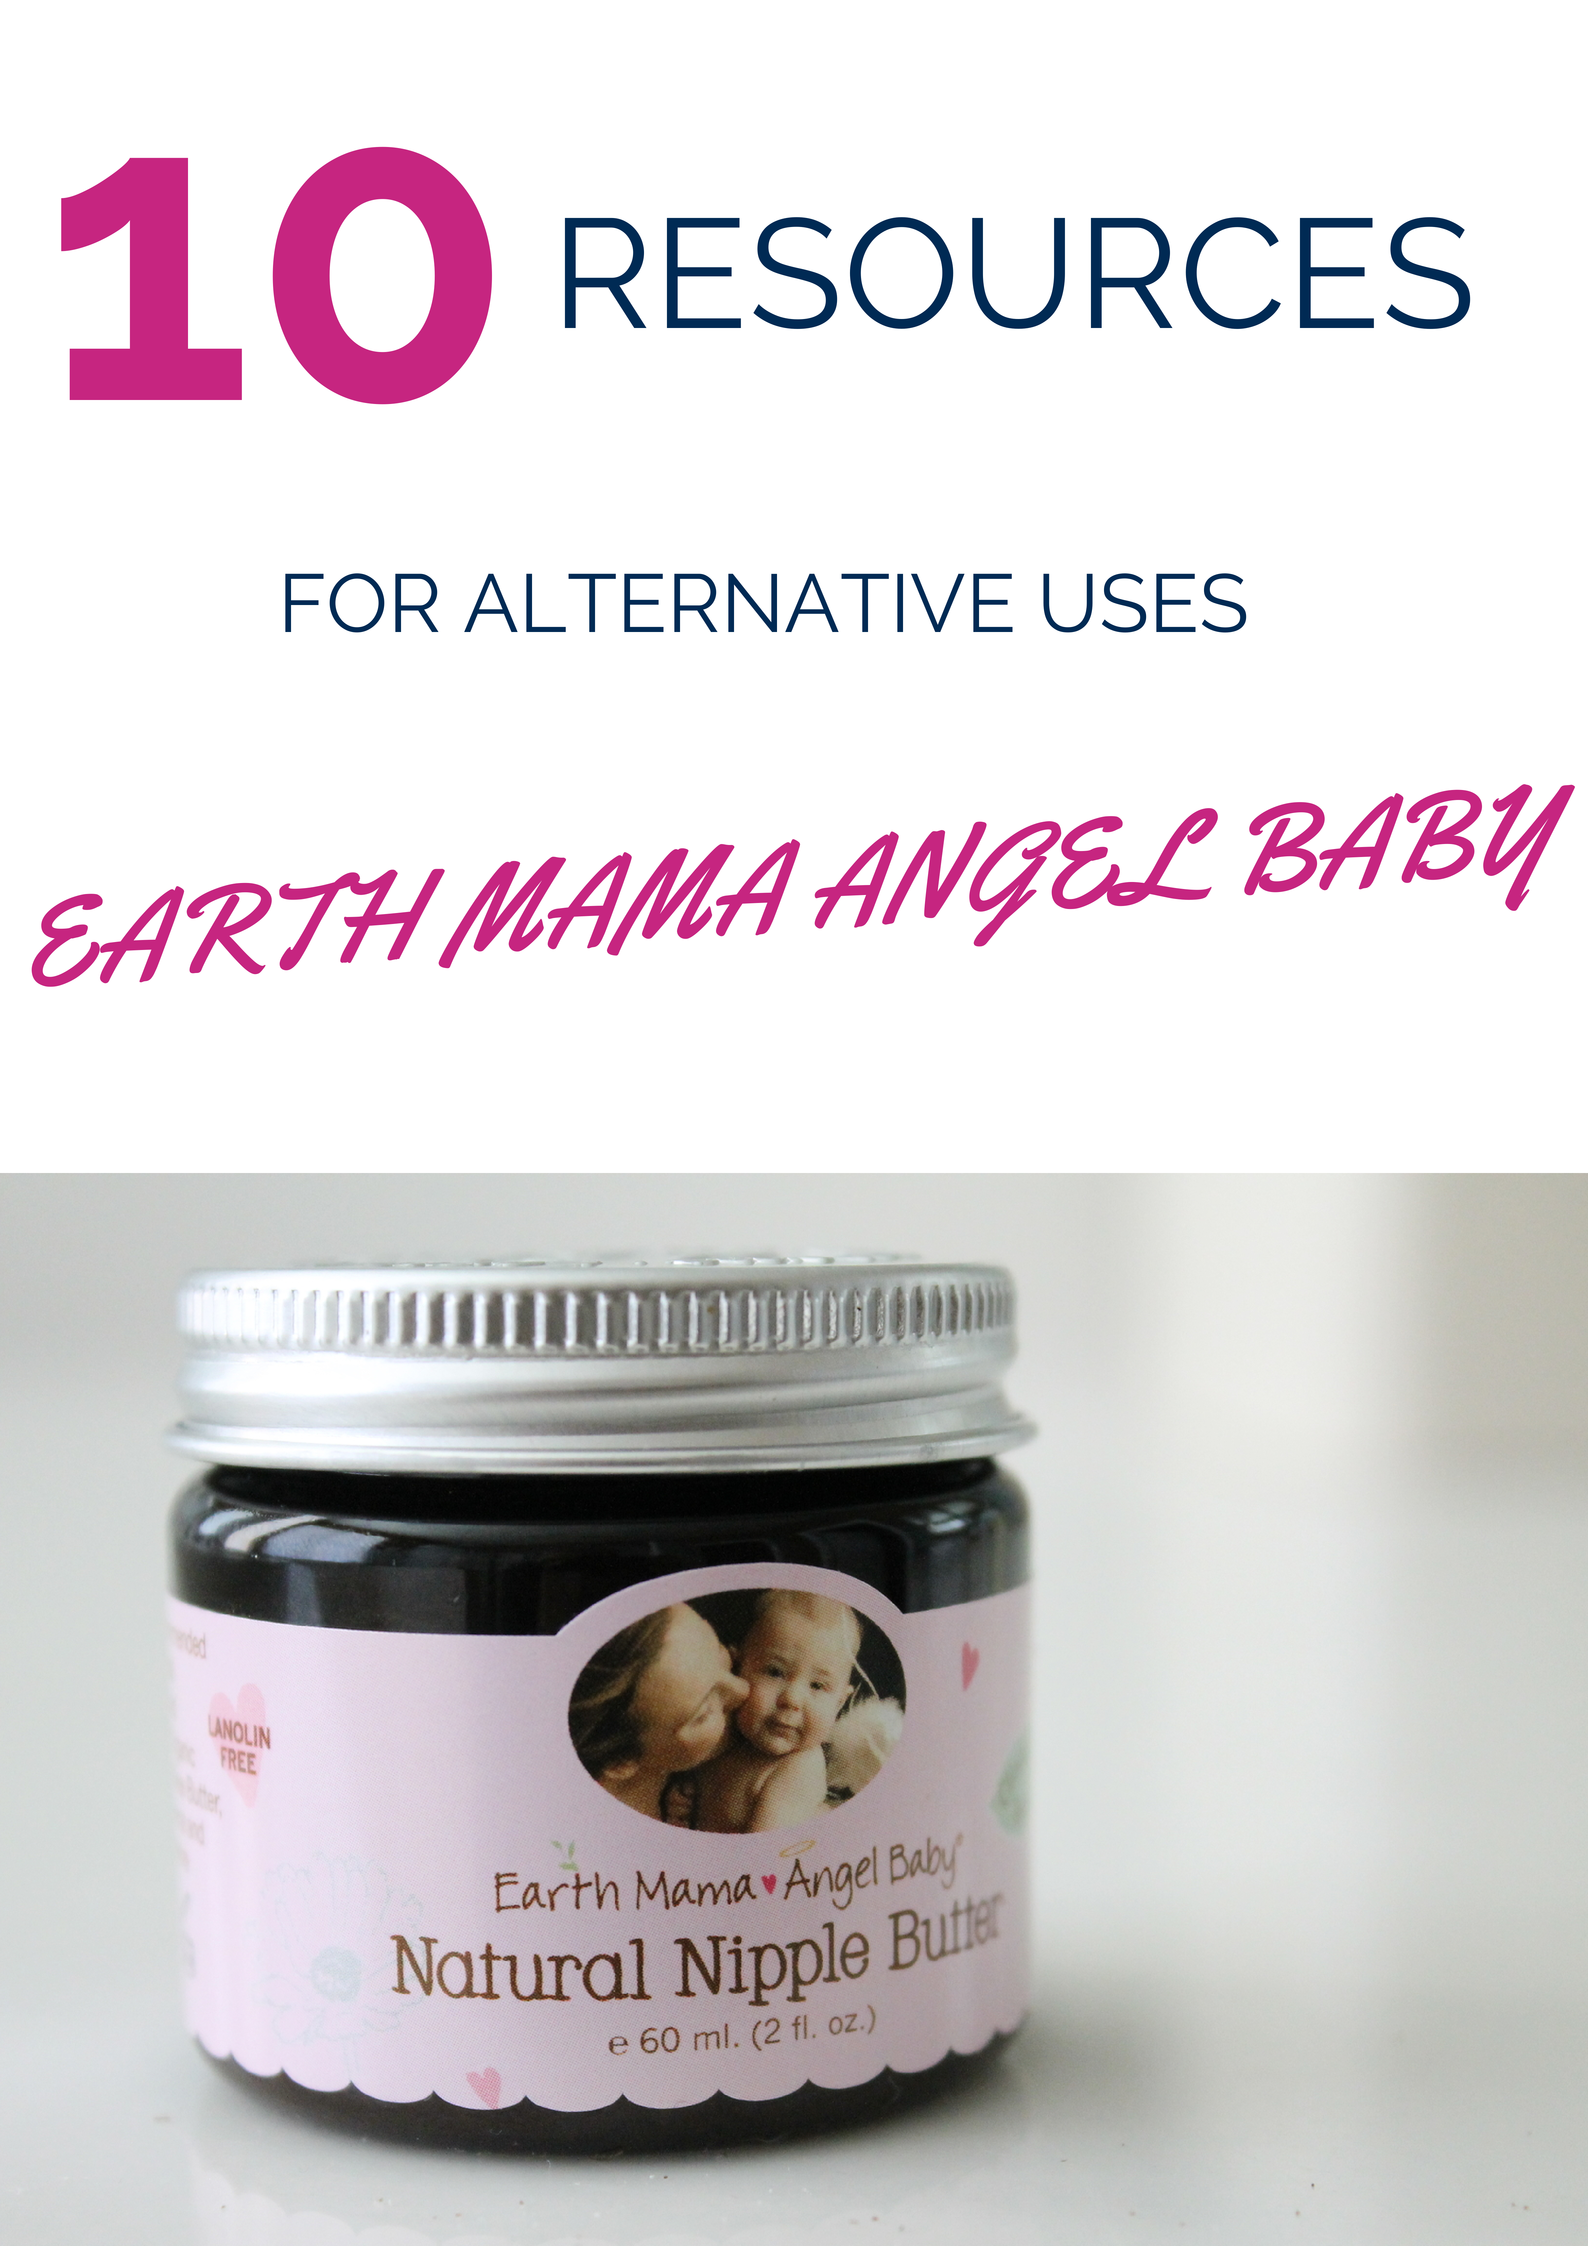 10 Resources for alternative uses Earth Mama Angel Baby via www.agutsygirl.com